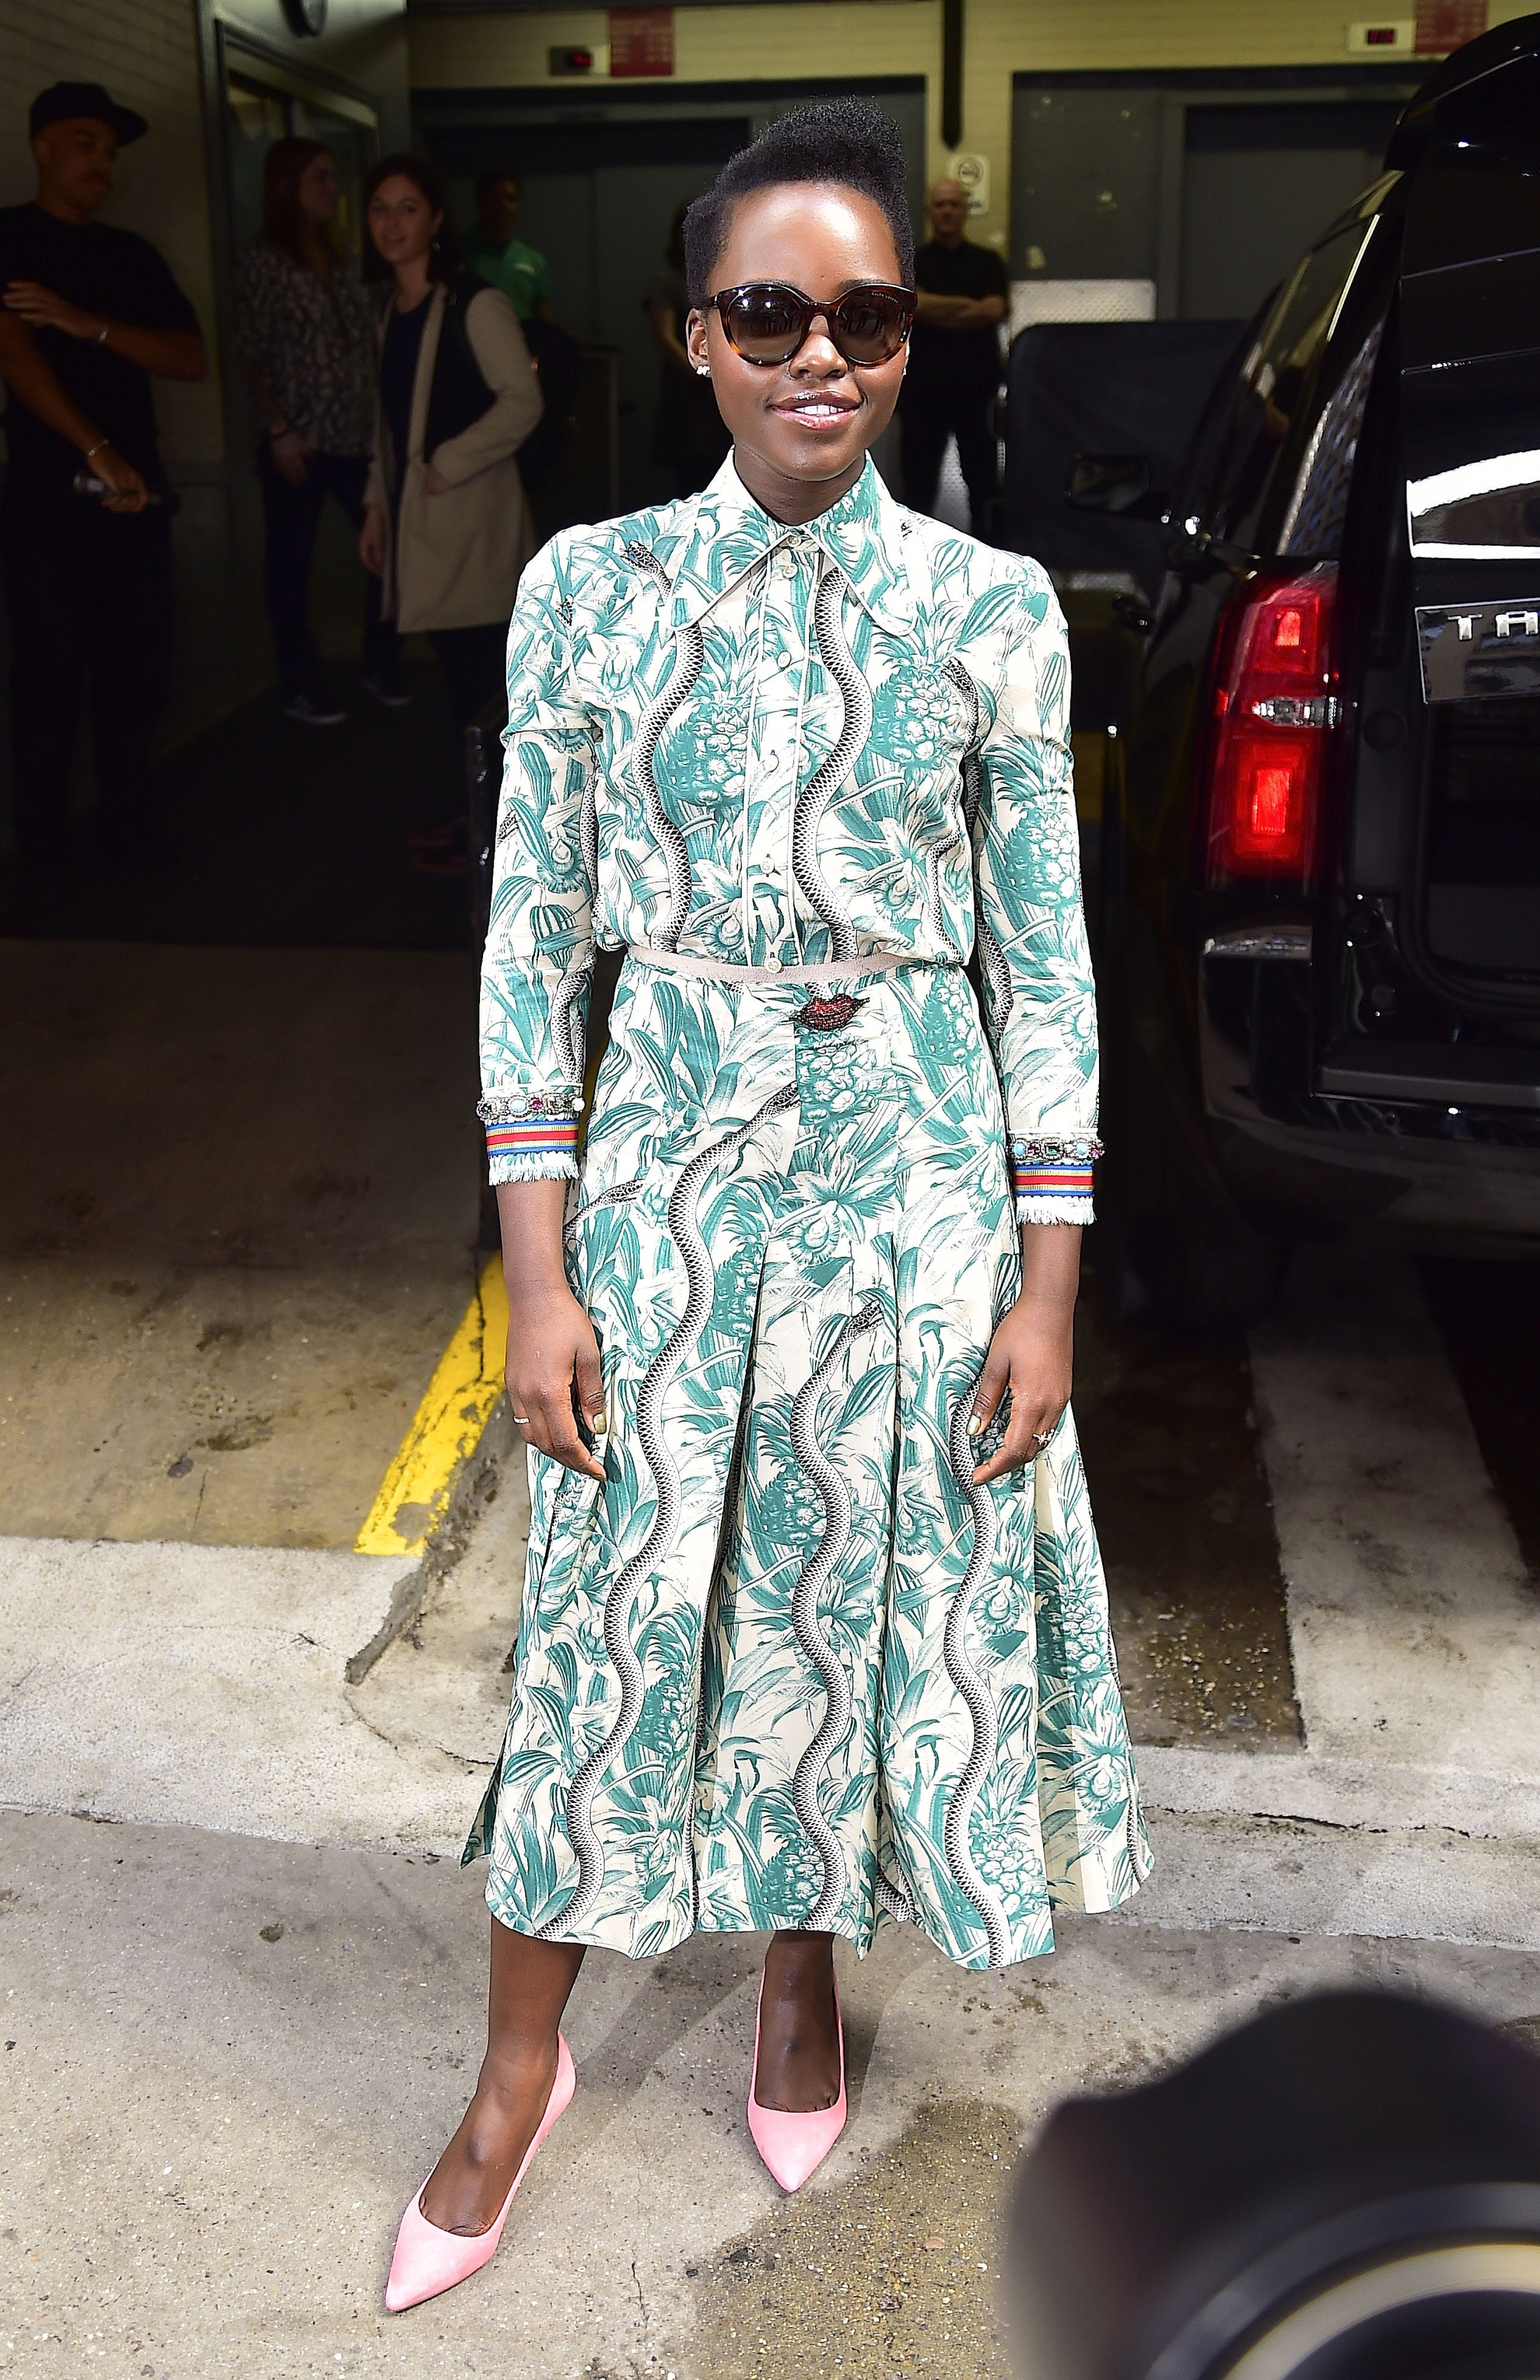 <p>Who: Lupita Nyong'o</p><p>When: March 10, 2016</p><p>Why: There's a lot going on with this palm tree and snake print shirtdress from Gucci's spring 2016 collection, but Lupita Nyong'o has a knack for wearing bold statements. She takes it one step further by accessorizing with bubblegum pink stilettos. </p>